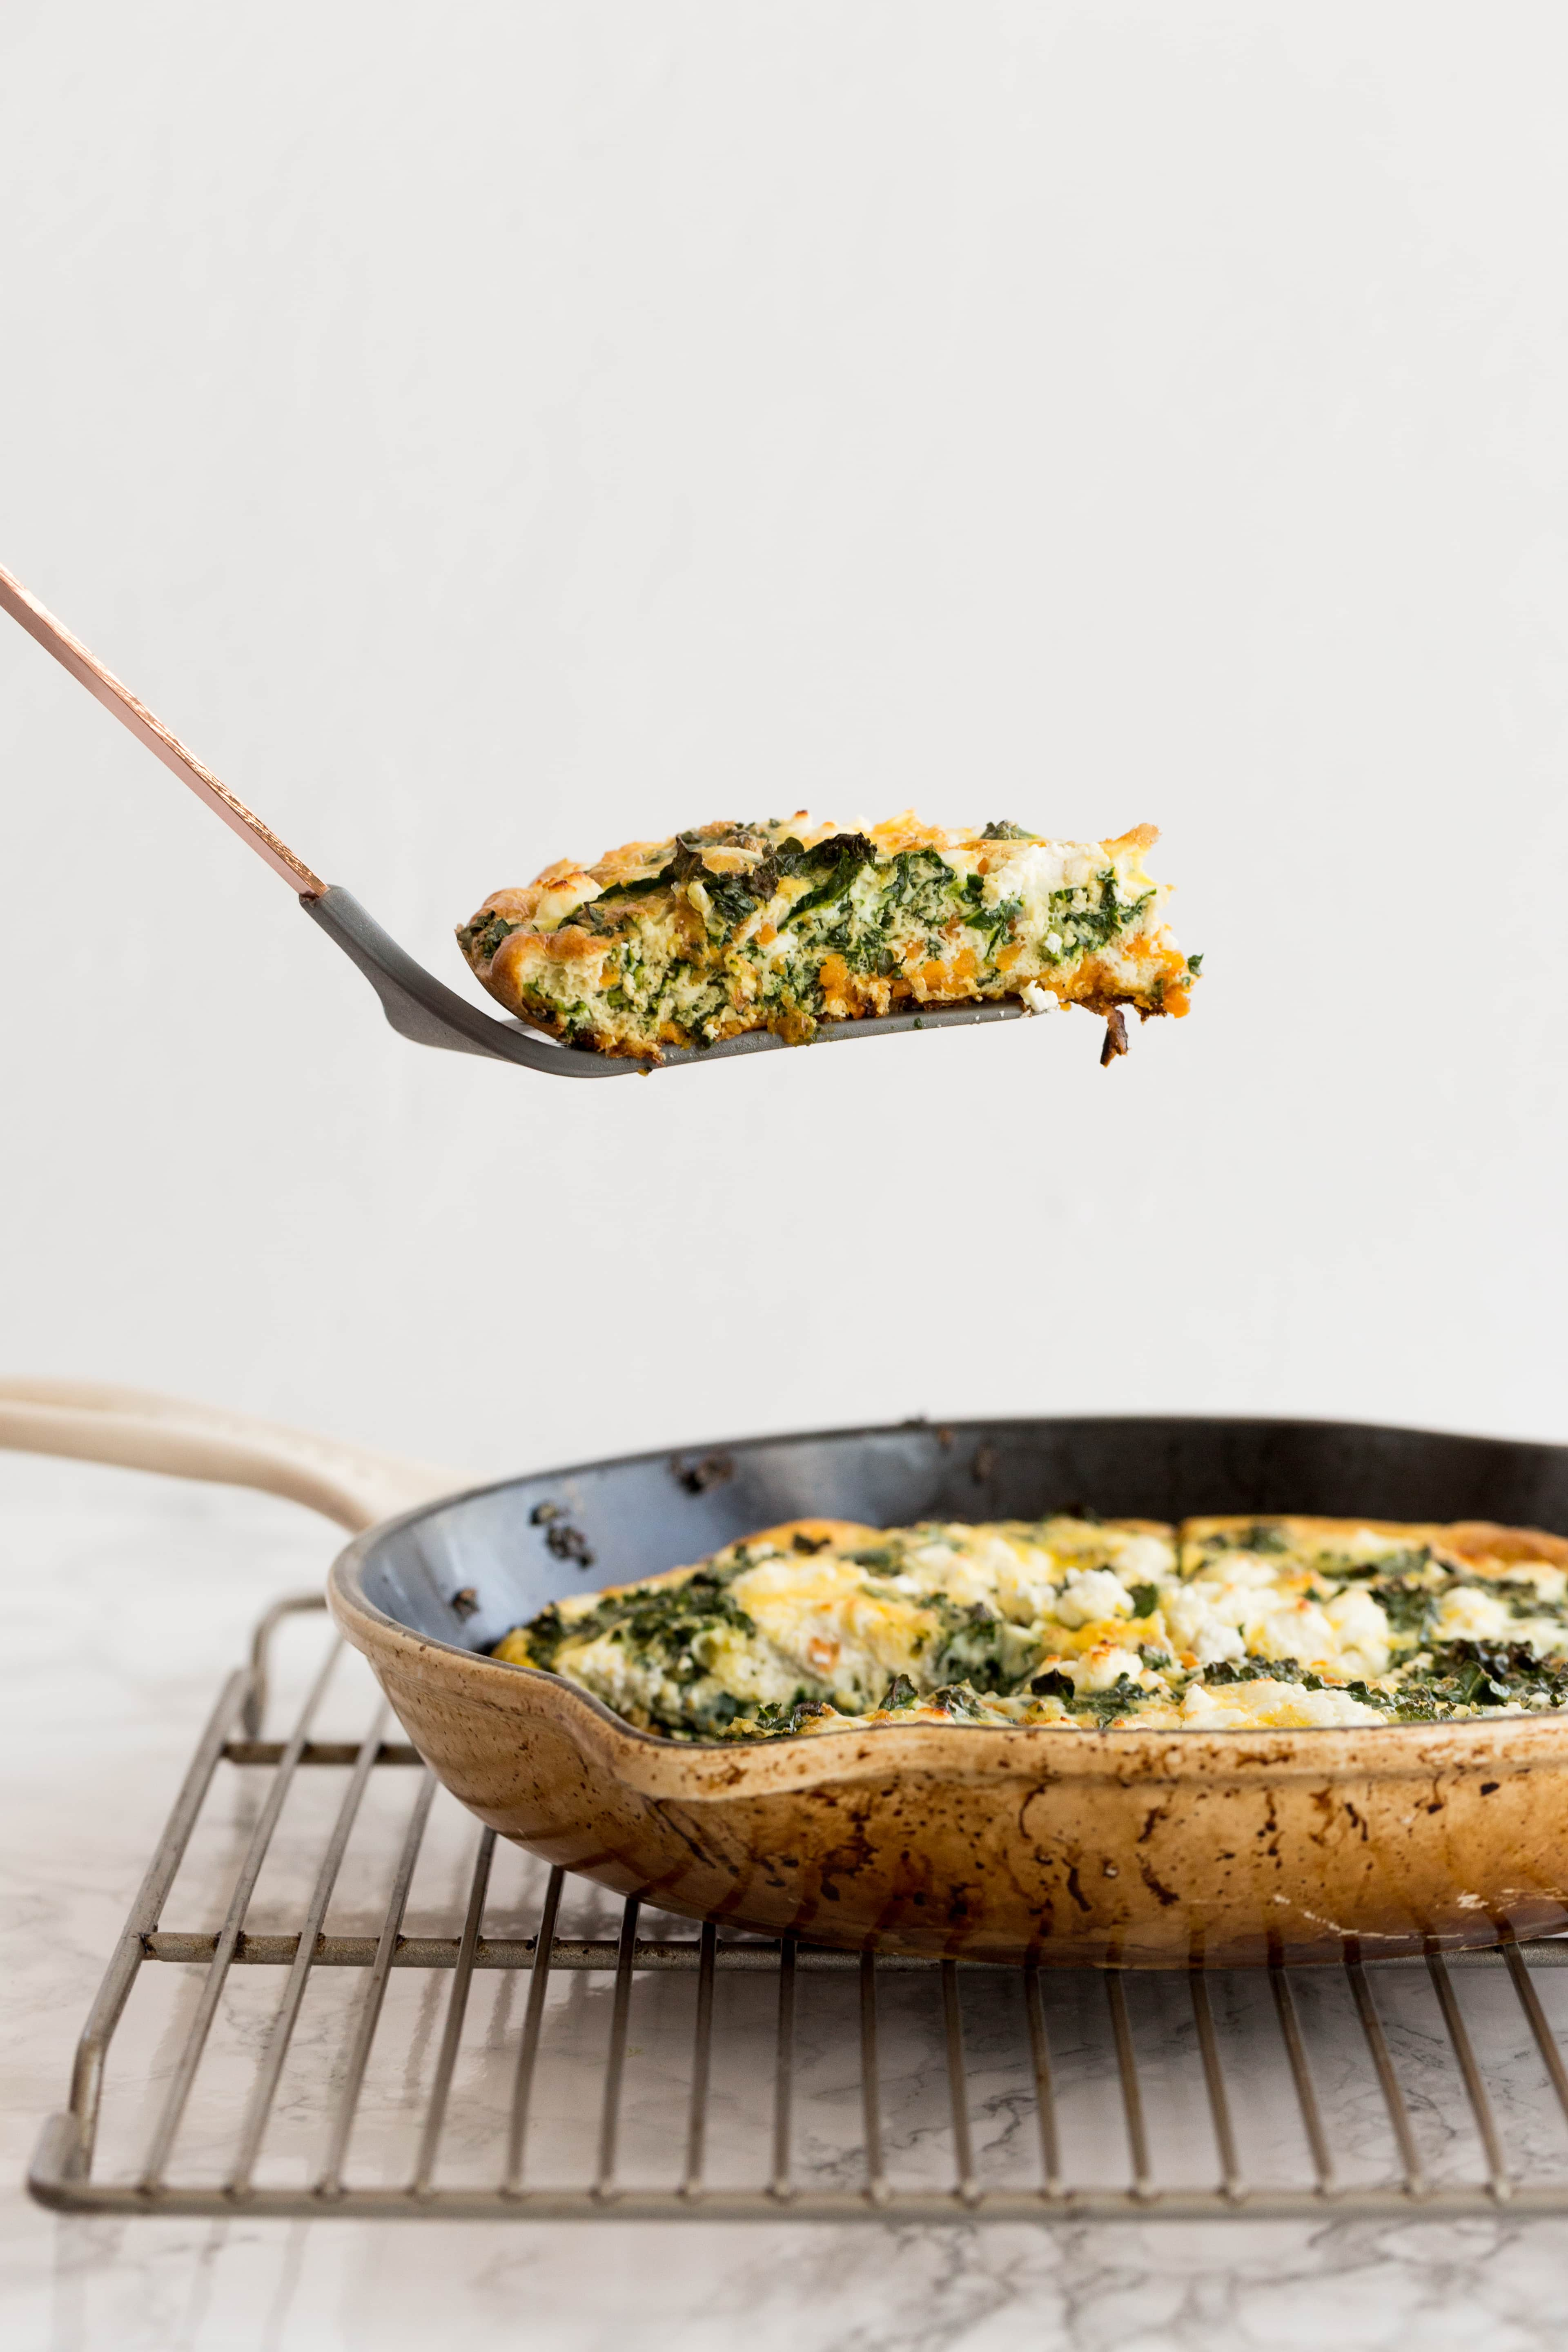 Sweet Potato, Kale and Goat Cheese Frittata